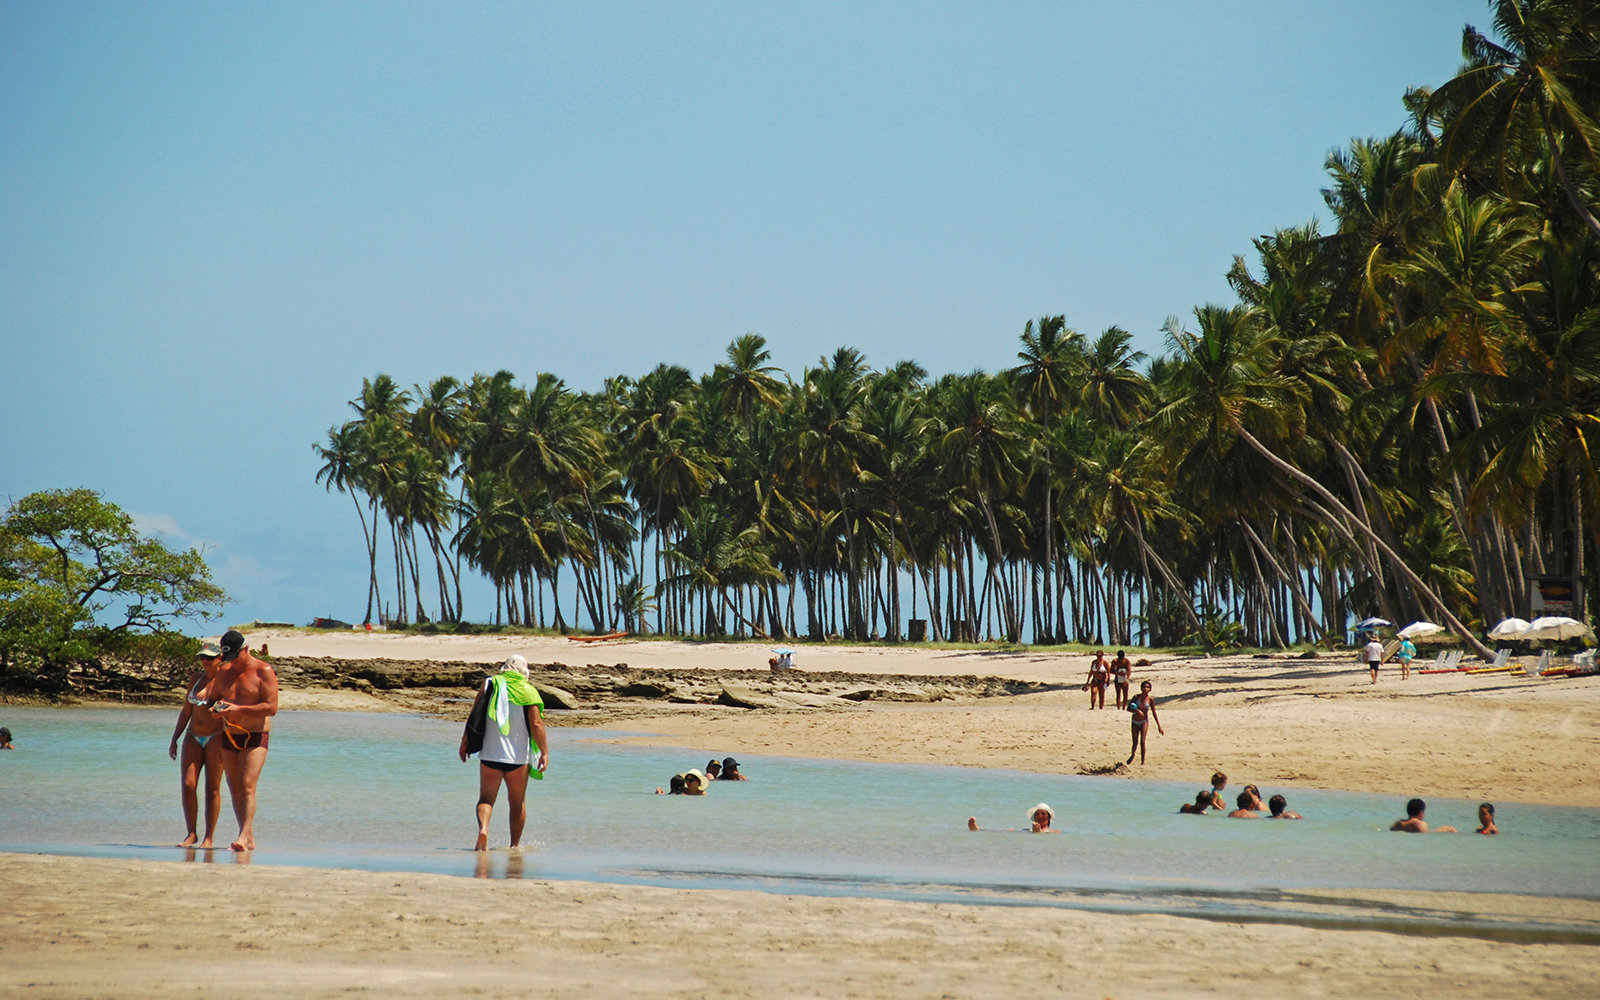 Ct4kh1 Brazil Pernambuco Praia Dos Carneiros Tourists Looking For Natural Pool Fishes At